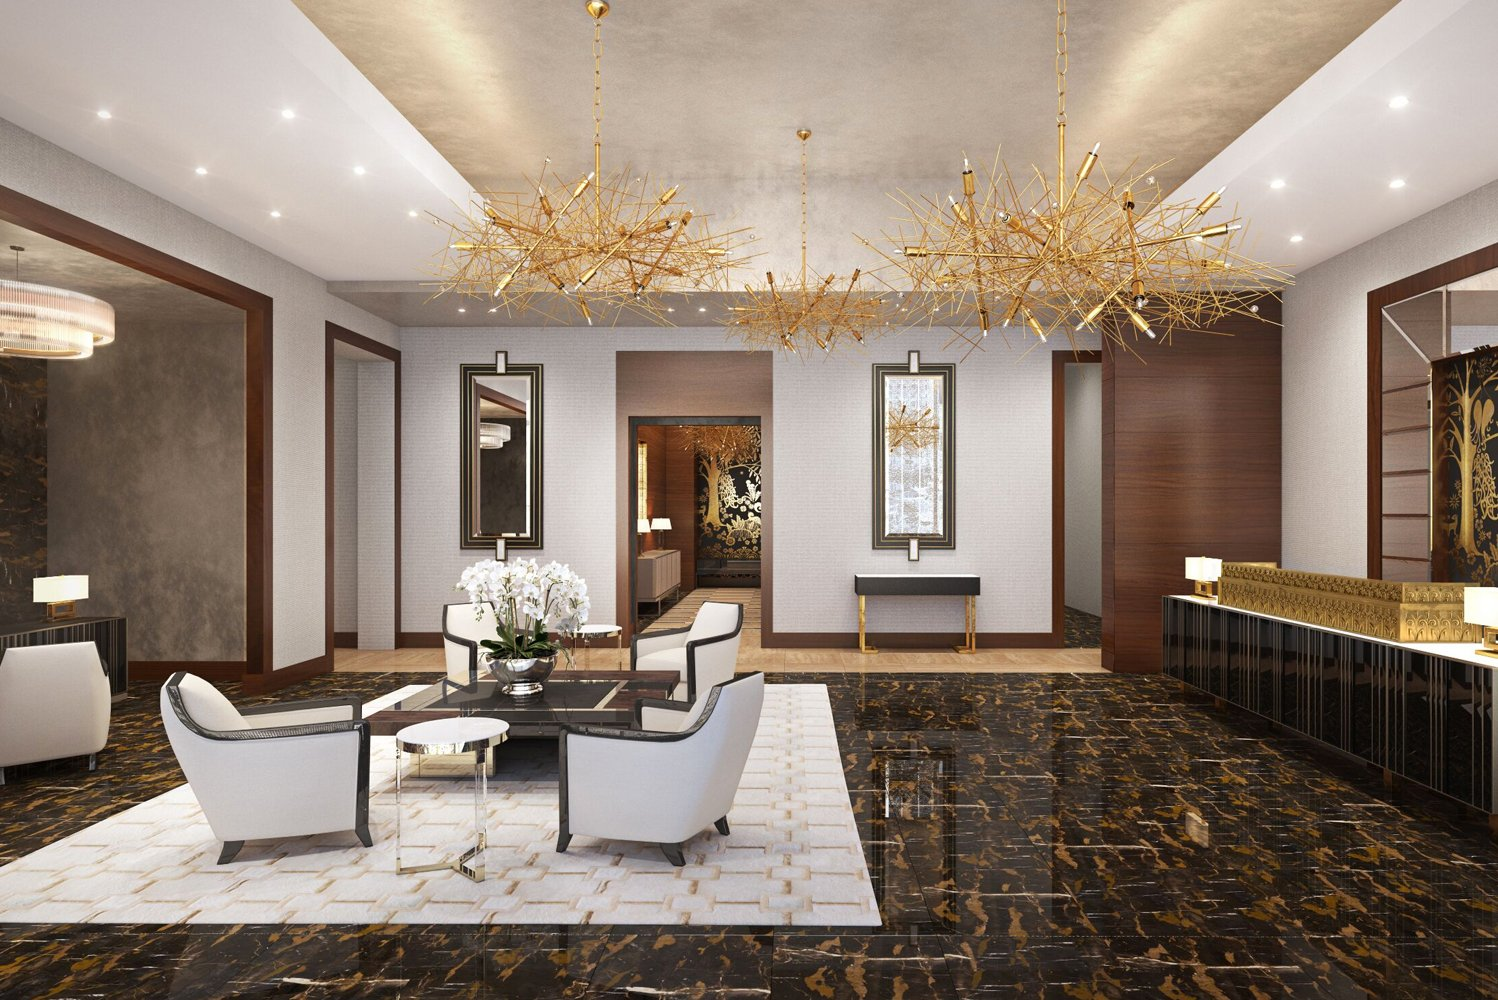 The Ritz-Carlton, Los Angeles started an enhancement project, the largest in the property's 10-year history.